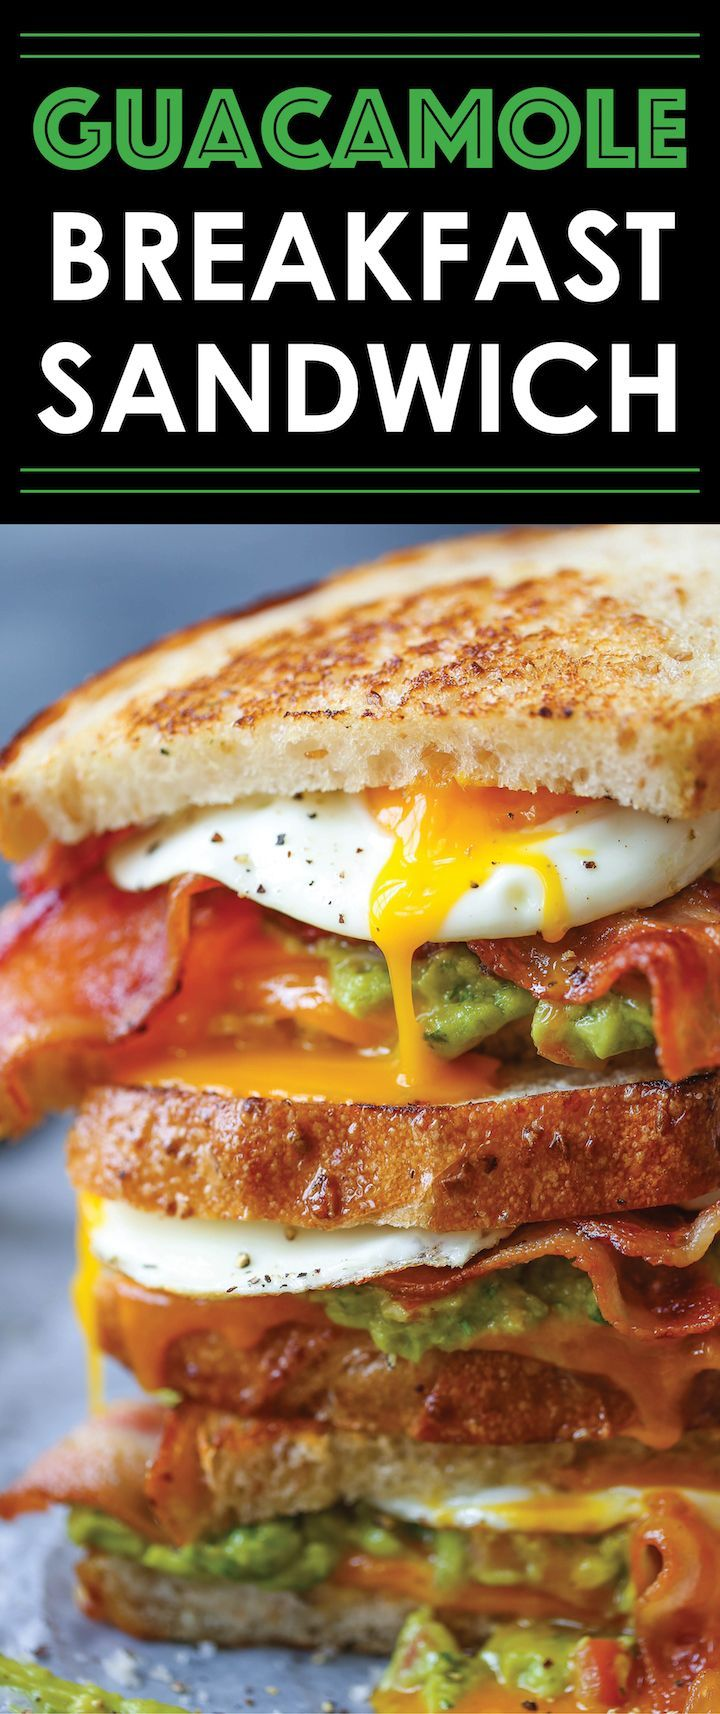 Guacamole Breakfast Sandwich - This is the absolute must-have breakfast sandwich. Crispy, buttery bread with eggs, bacon, guacamole and melted cheese!!